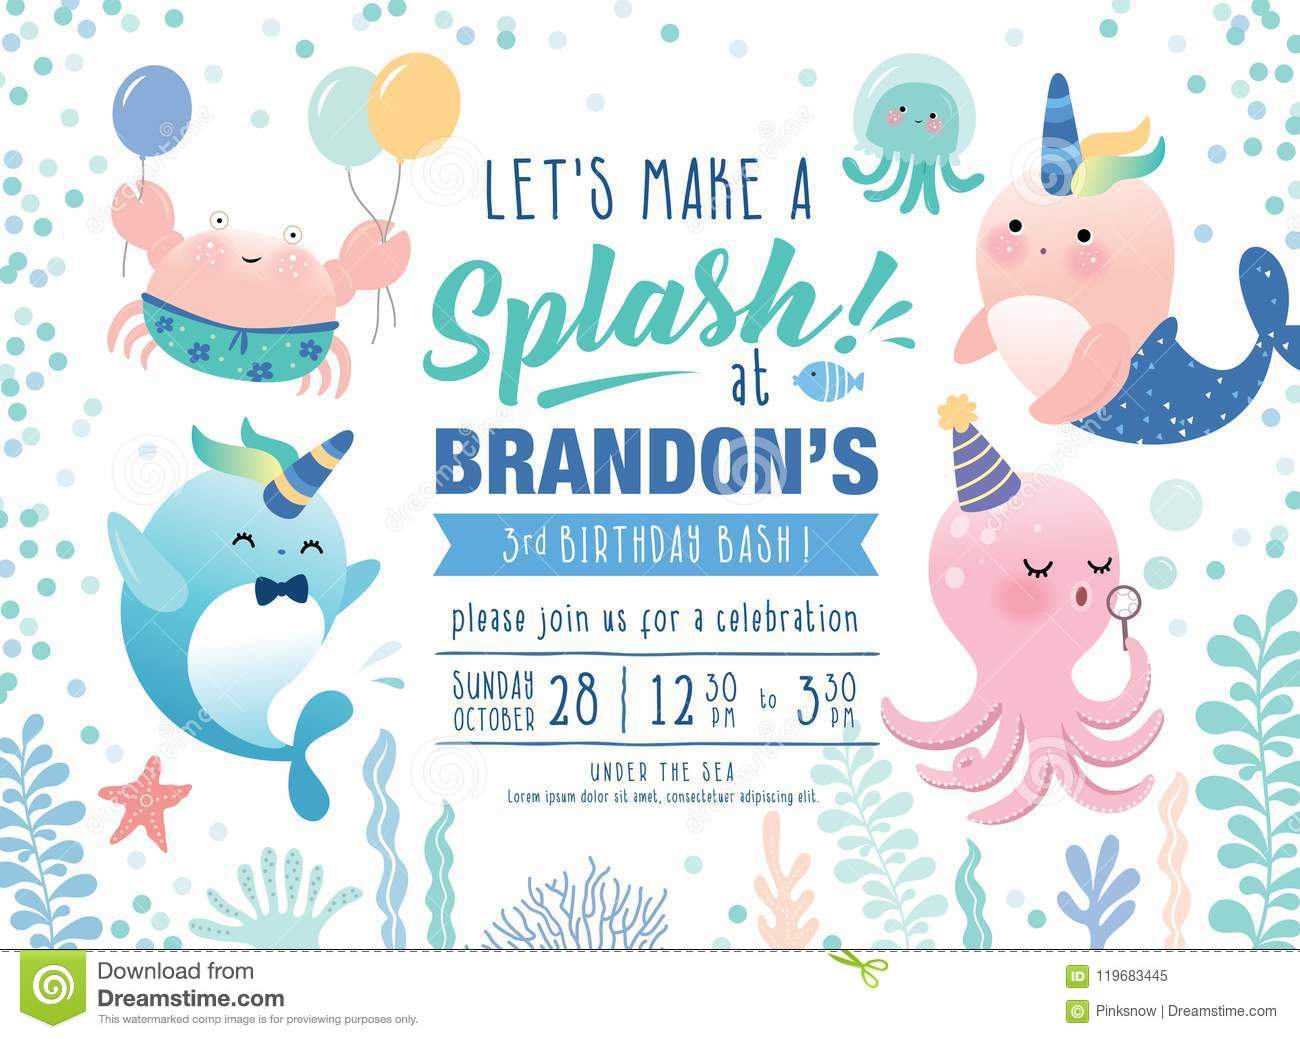 Kids Birthday Party Under The Sea Theme Invitation Card With Cute Marine Life Cartoon Character